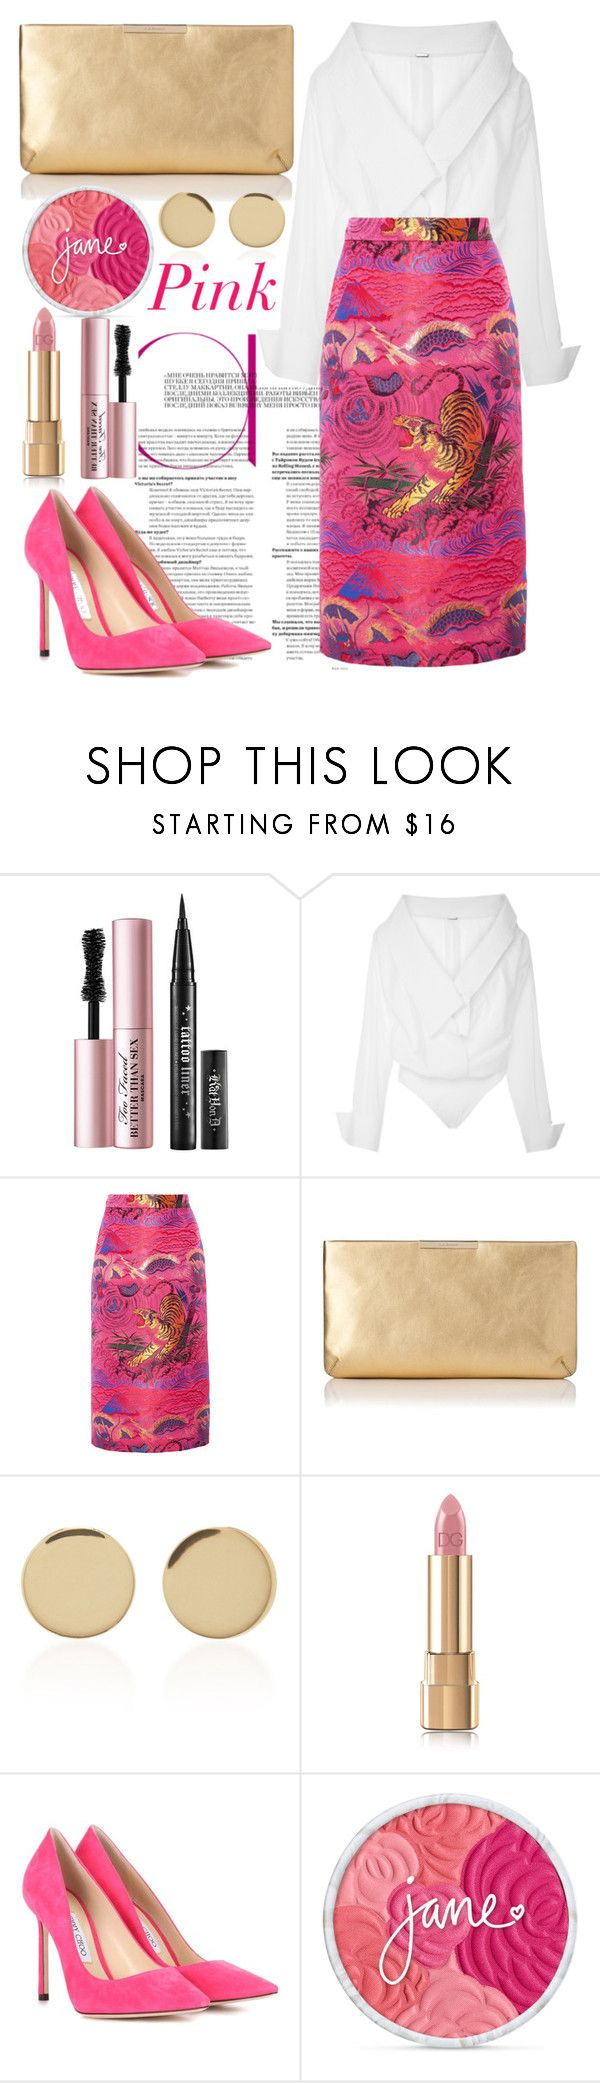 """""""Pink🦄"""" by ana-maria-punga ❤ liked on Polyvore featuring Too Faced Cosmetics, Johanna Ortiz, Gucci, L.K.Bennett, Magdalena Frackowiak, Dolce&Gabbana and Jimmy Choo"""